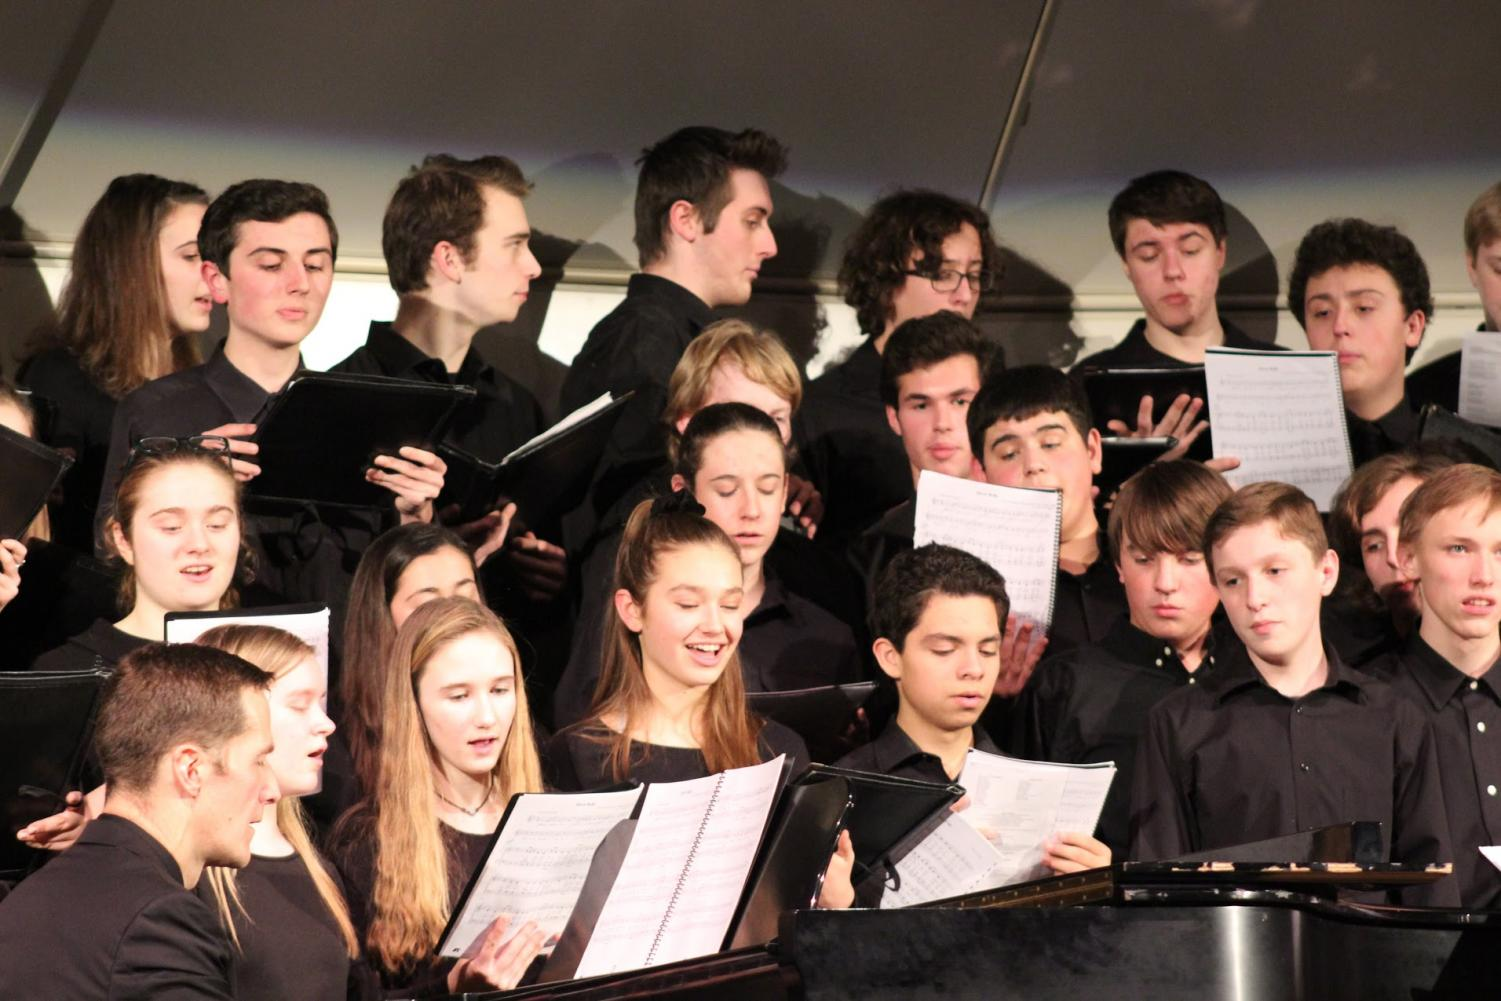 All the members of the Hingham Highschool Chorus take part in the Christmas sing-along. (Photo by Patty McDonald).